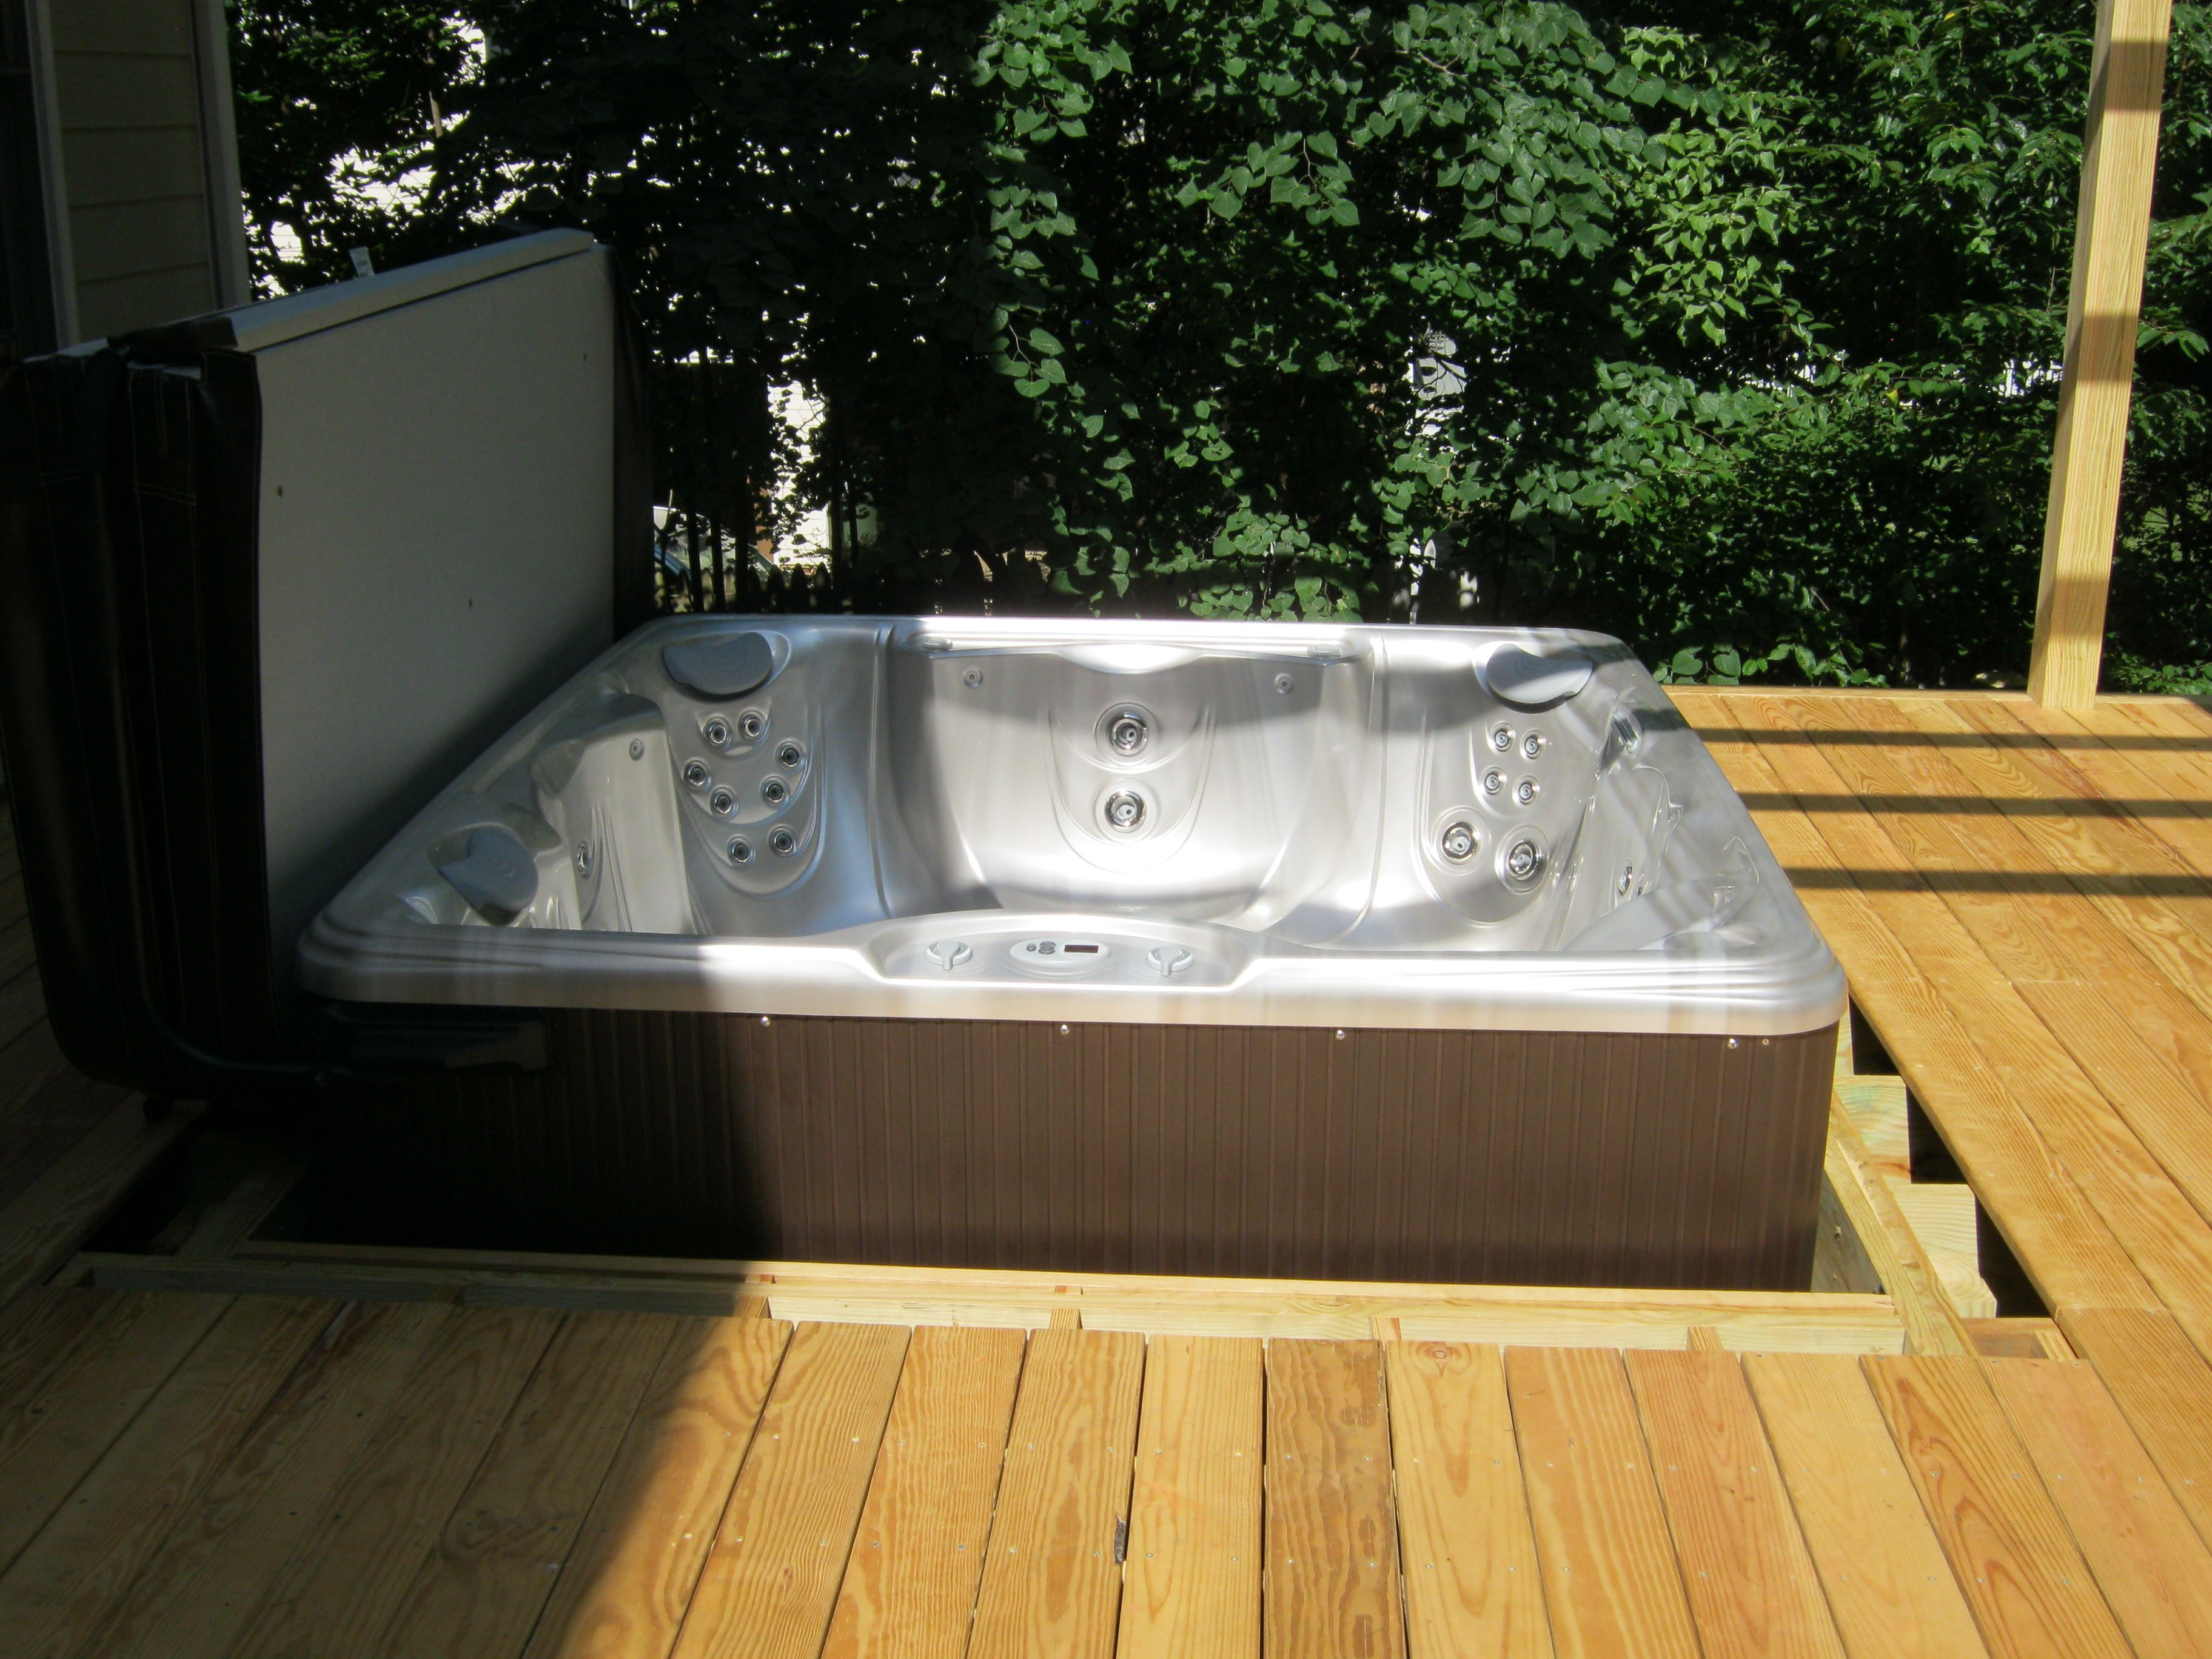 Pin On Hot Tub Installations